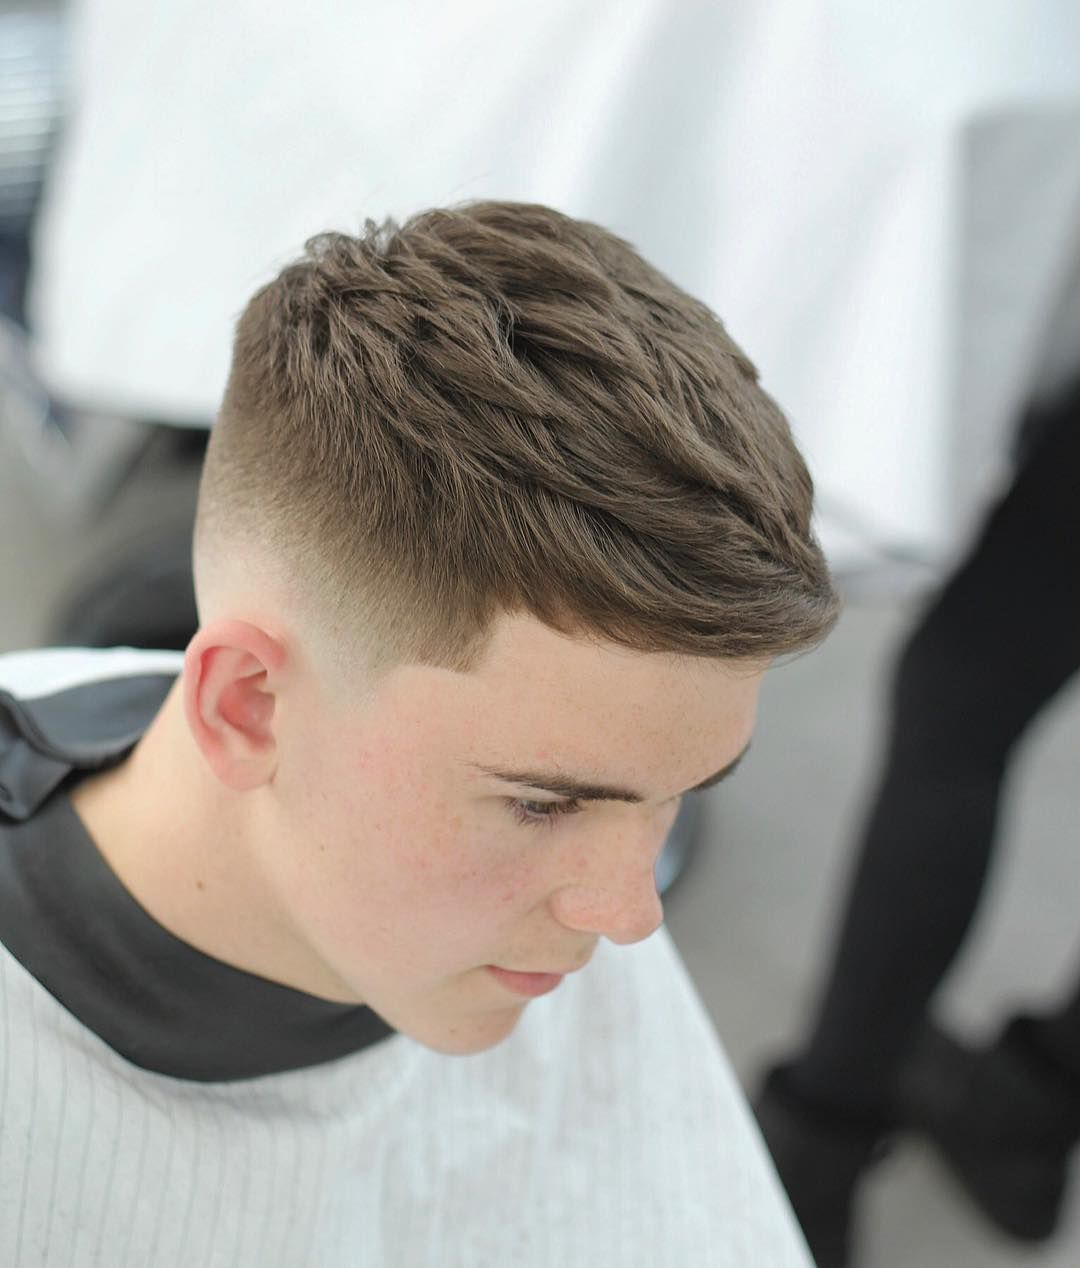 These are the best menus haircuts and cool hairstyles for men to get